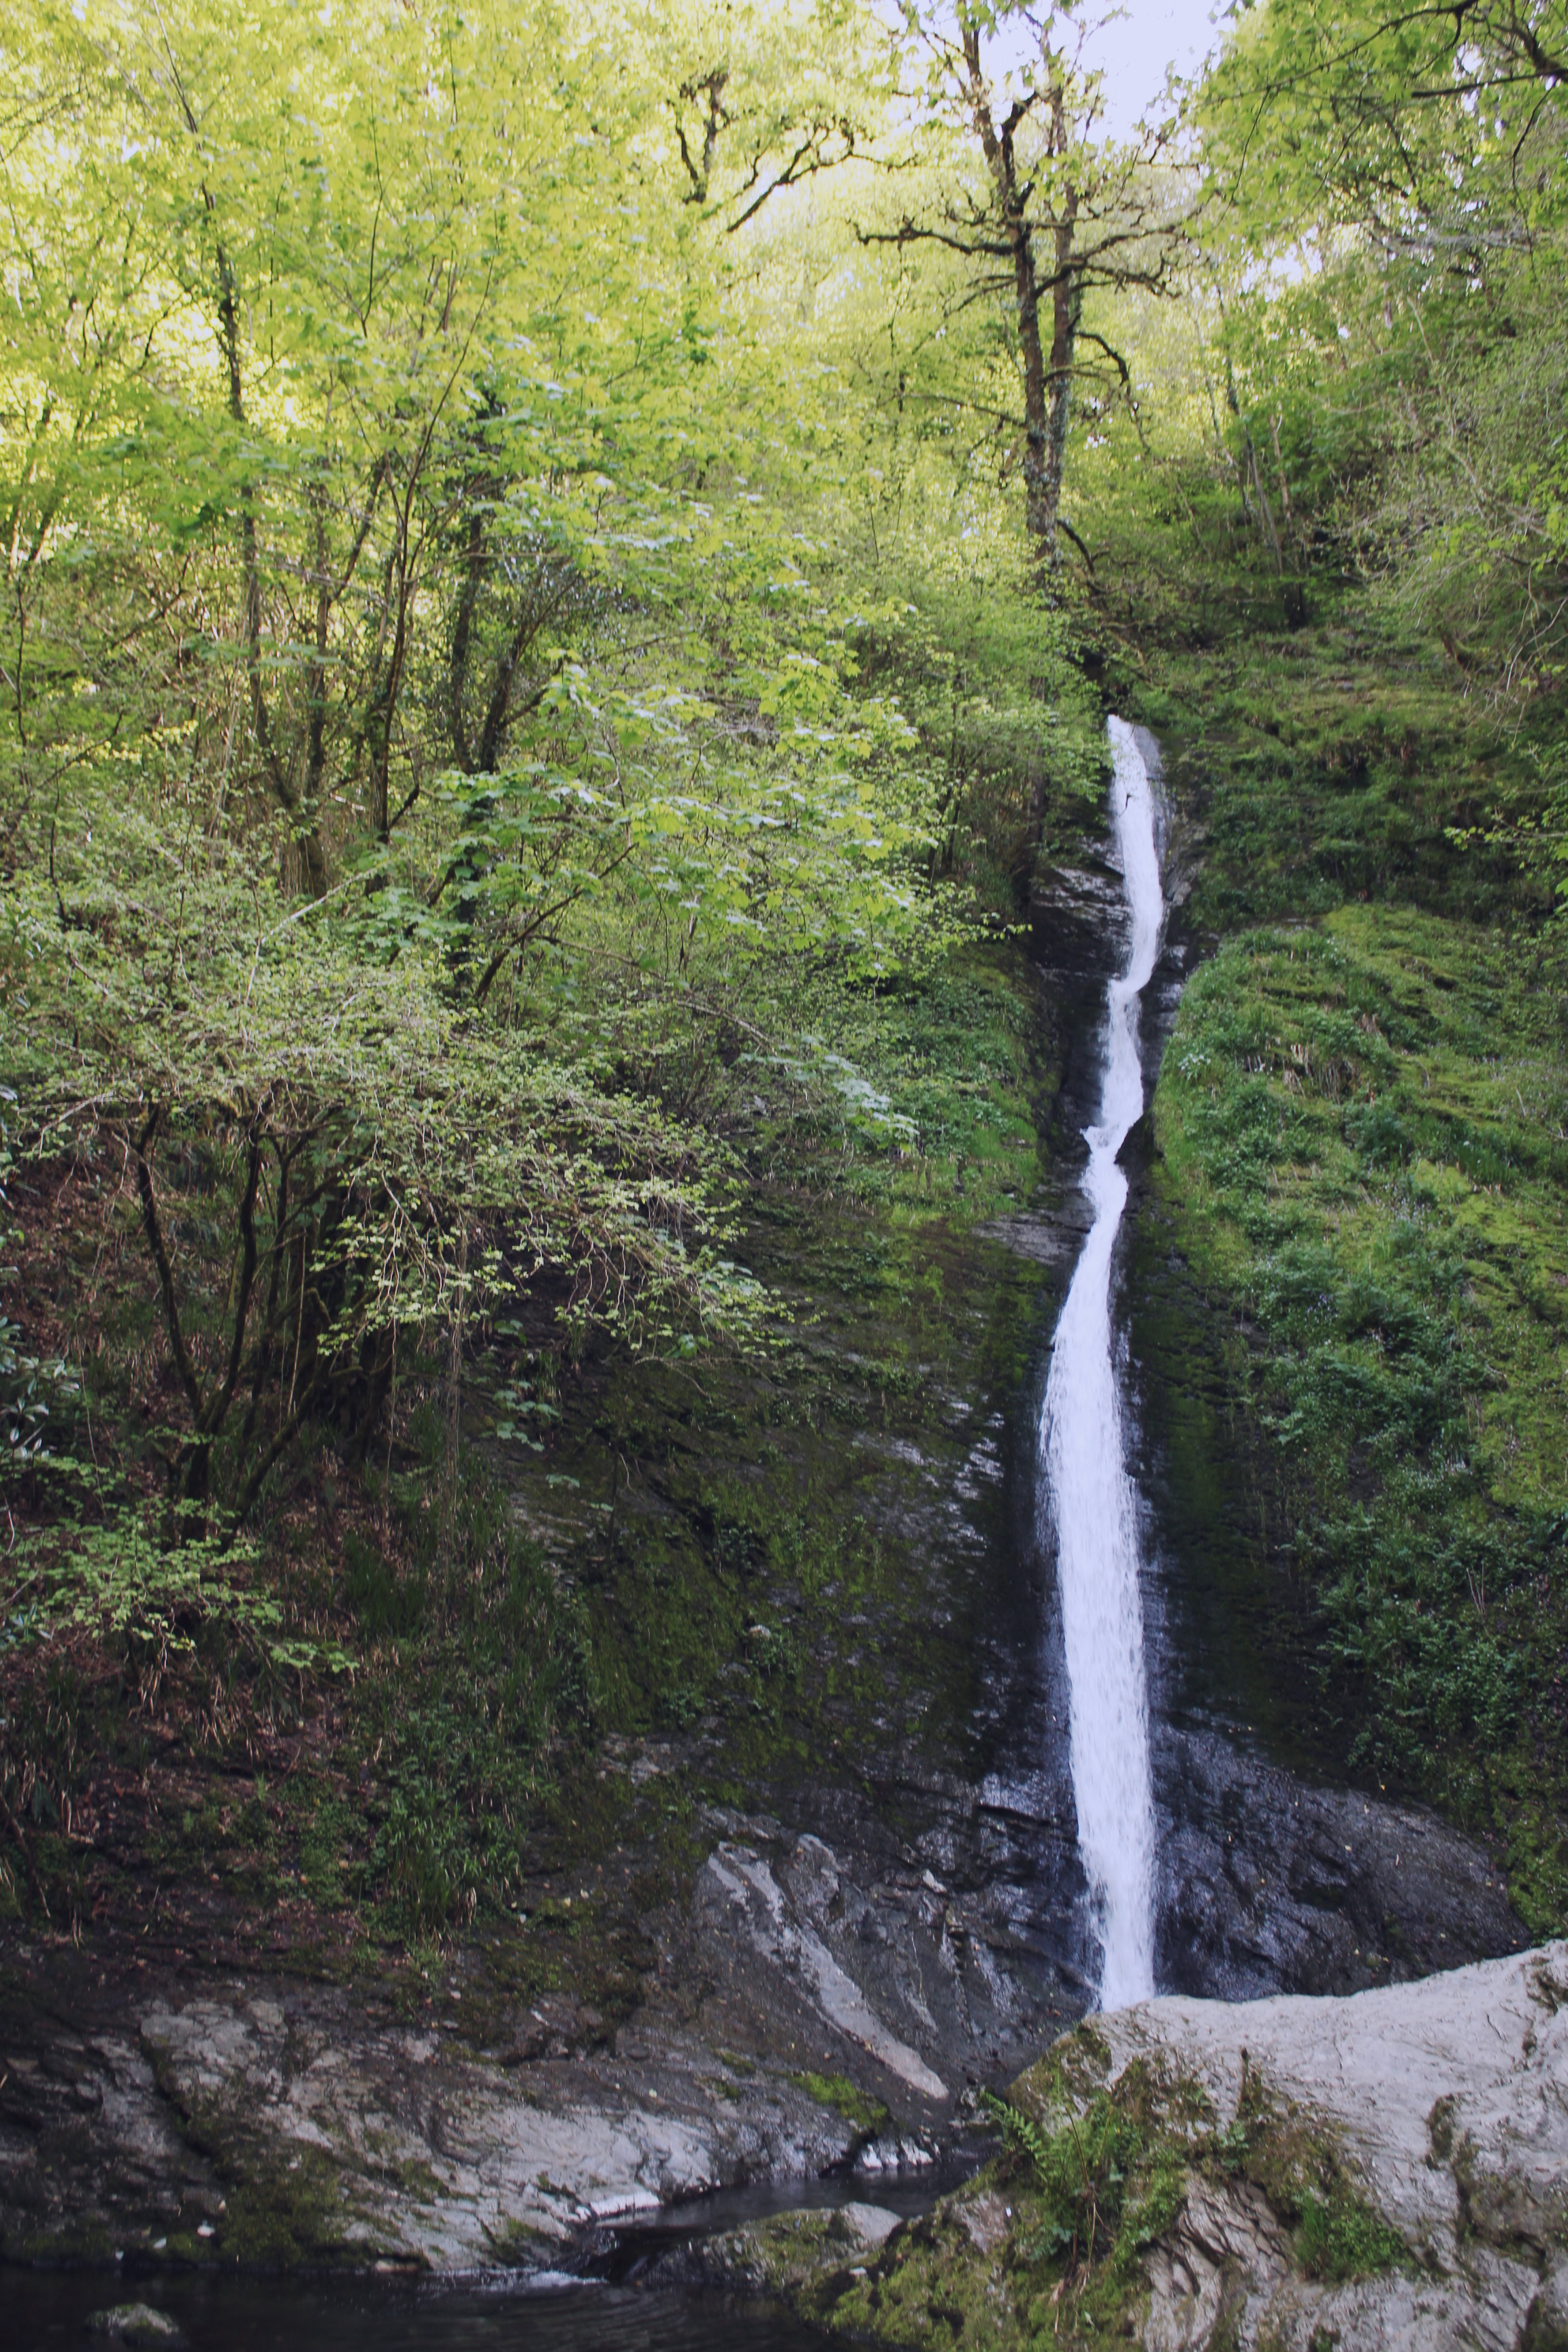 The White Lady waterfall, at Lydford Gorge, Devon